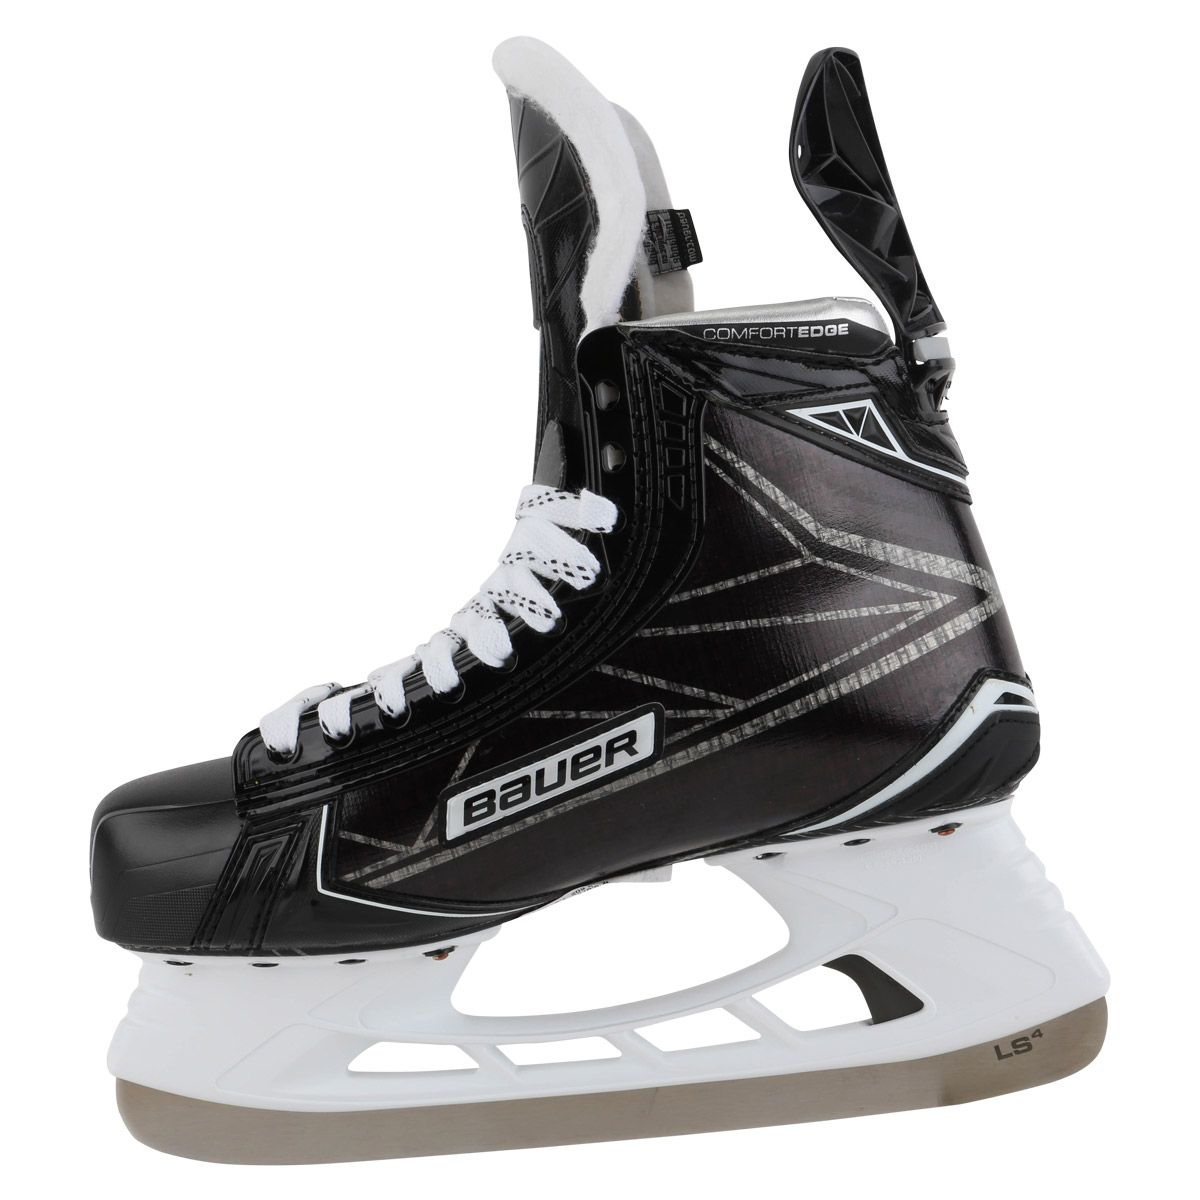 Фото 4: КОНЬКИ BAUER SUPREME 1S JR